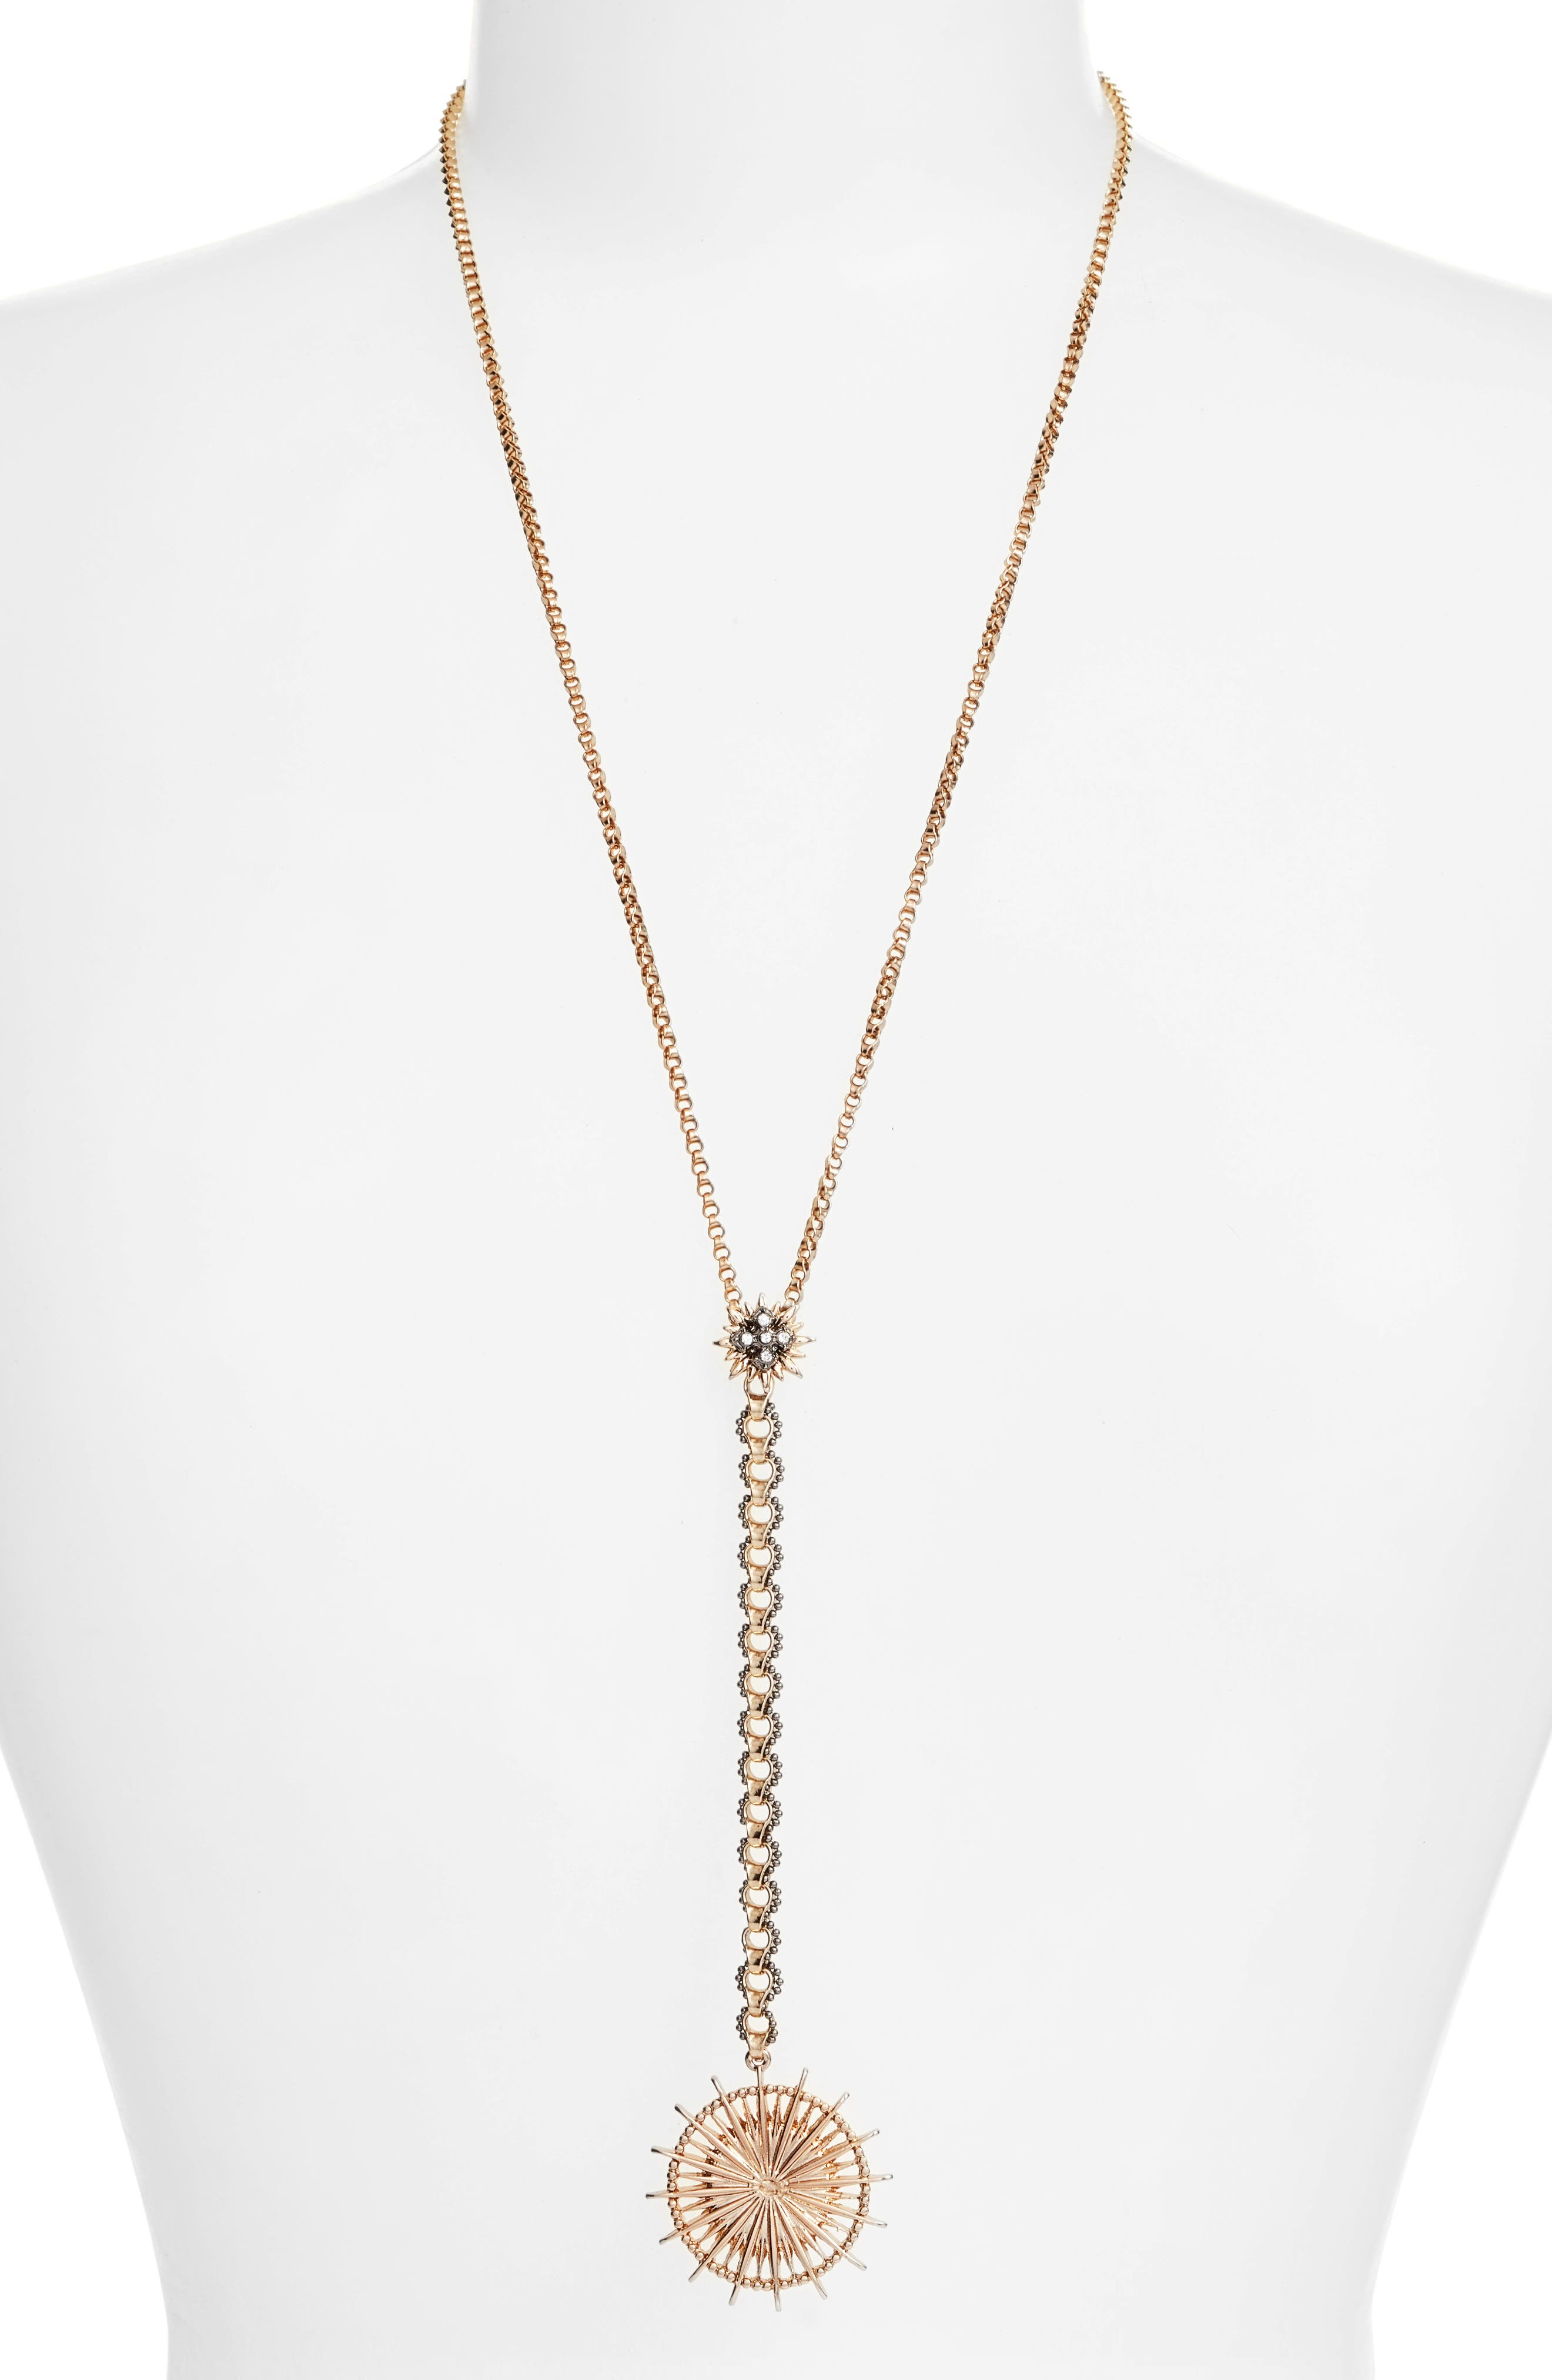 Light Up the Night Y-Necklace,                         Main,                         color, Gold